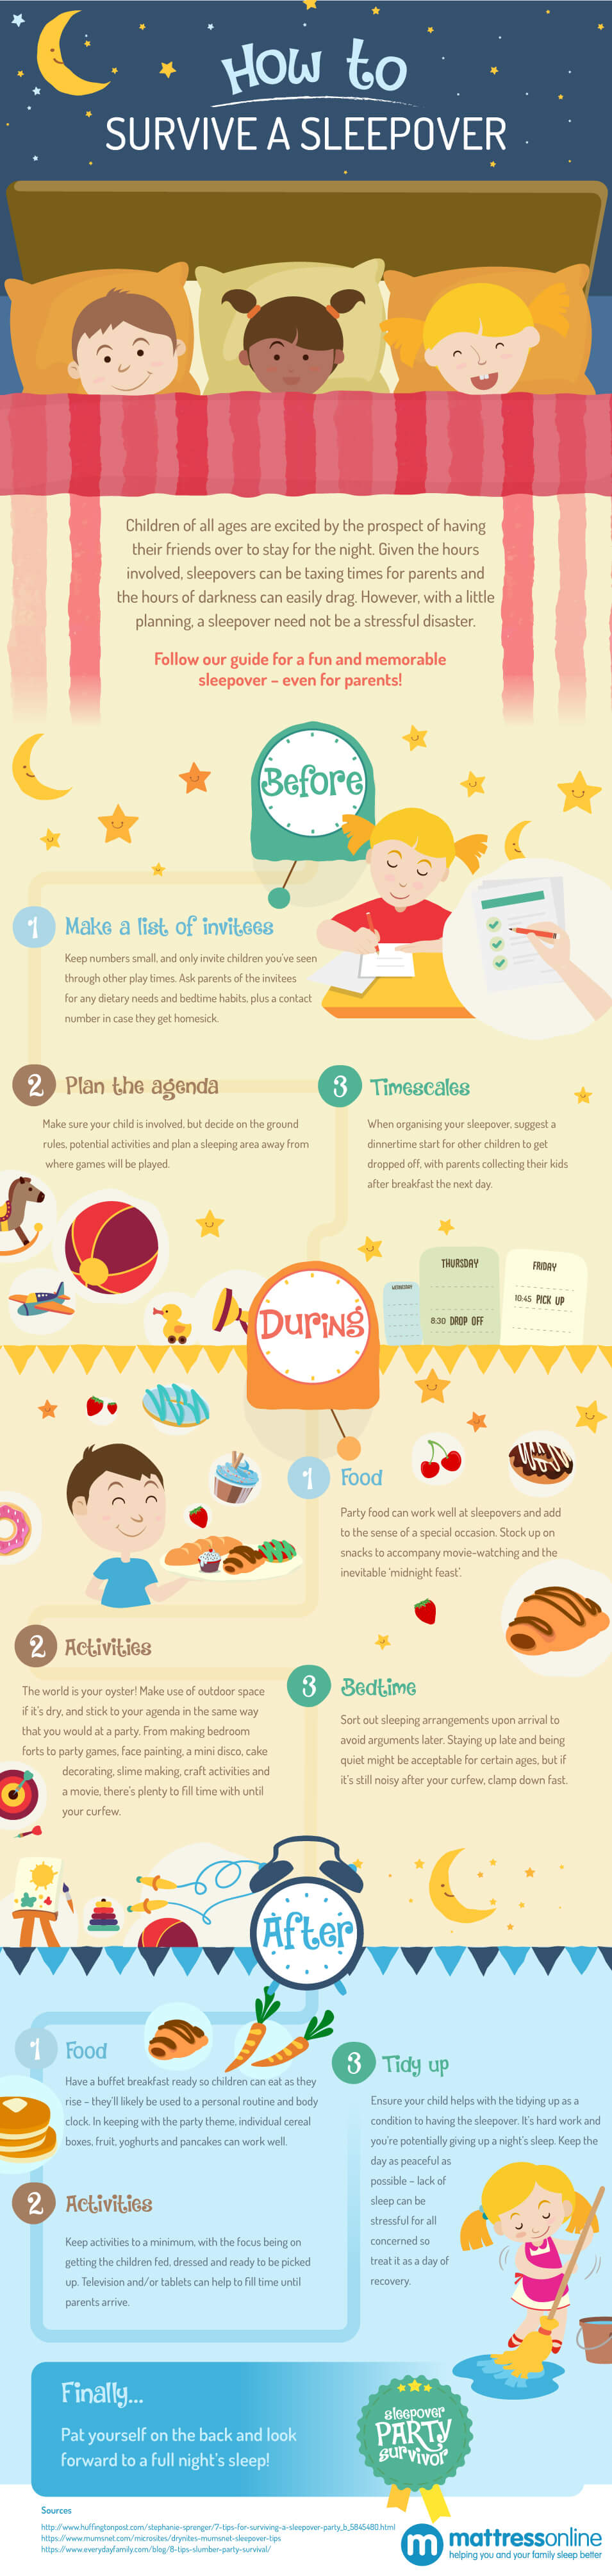 How to Survive a Sleepover Infographic